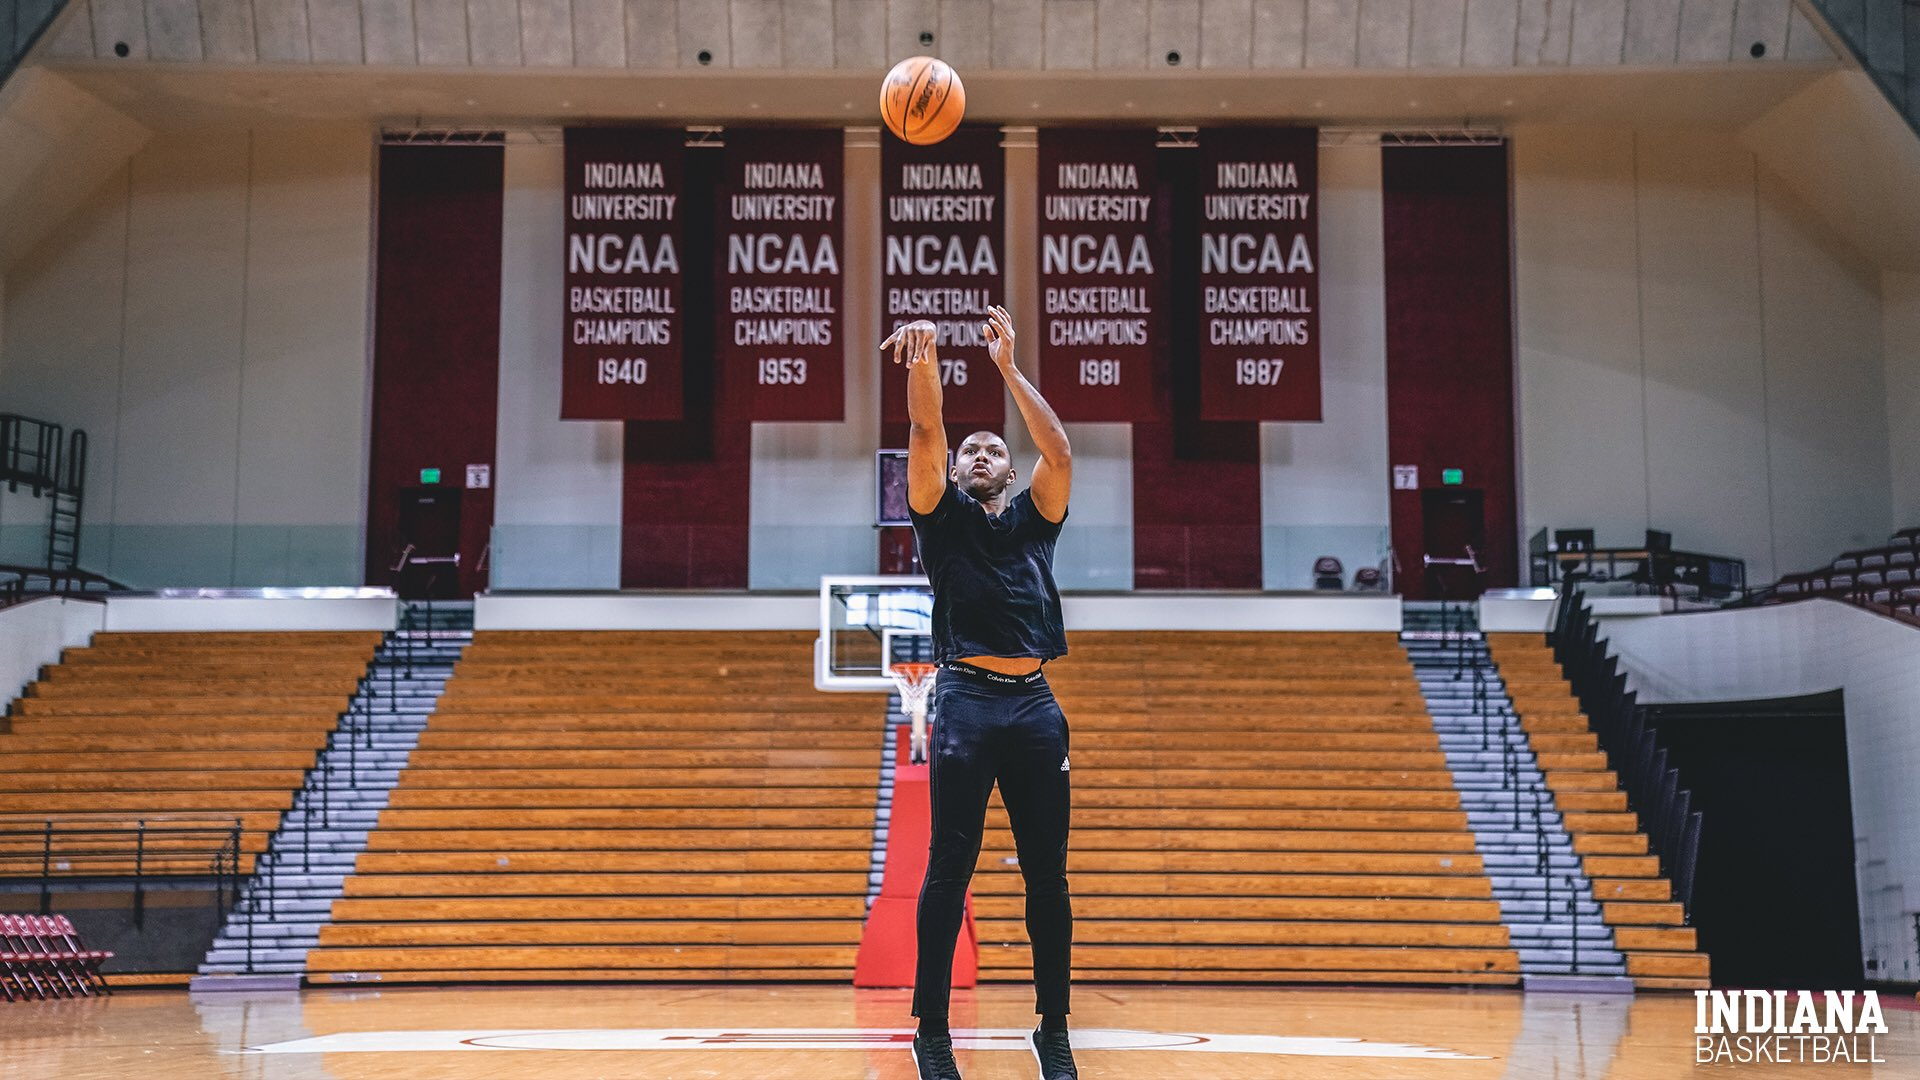 Indiana Basketball On Twitter Welcome Home At Theofficialeg10